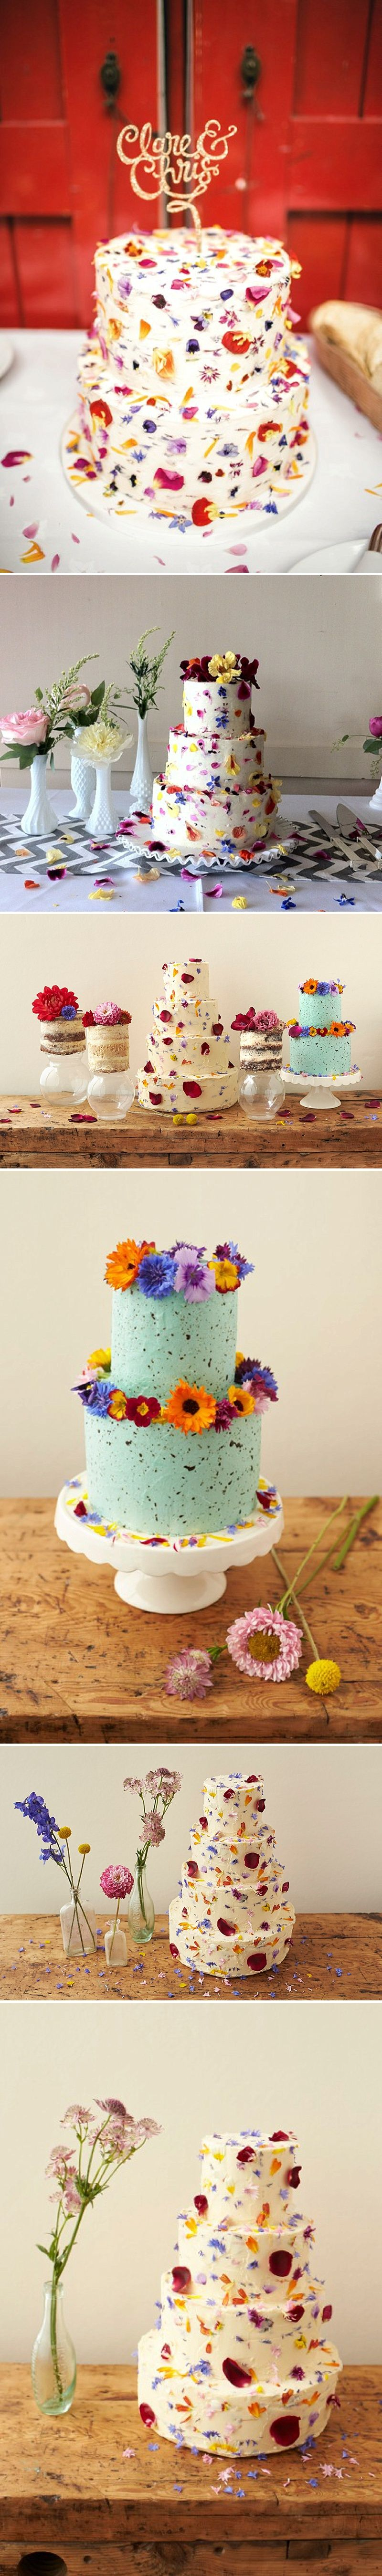 How To Decorate A Wedding Or Celebration Cake With Edible Flowers